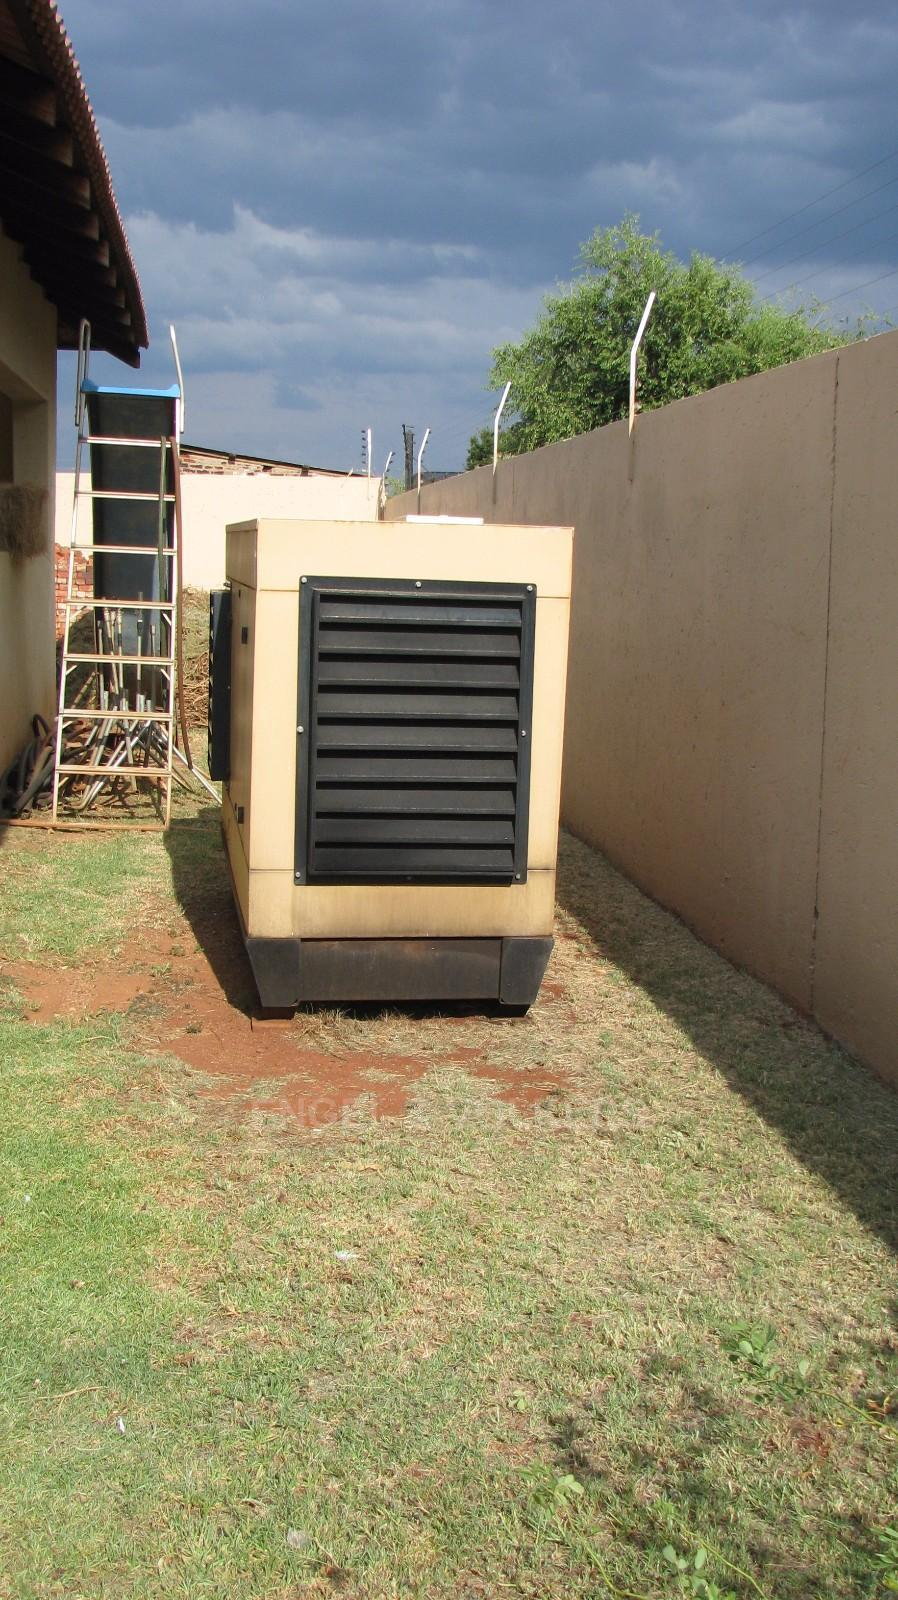 House in Melodie A/h - 50 KWA diesel generator